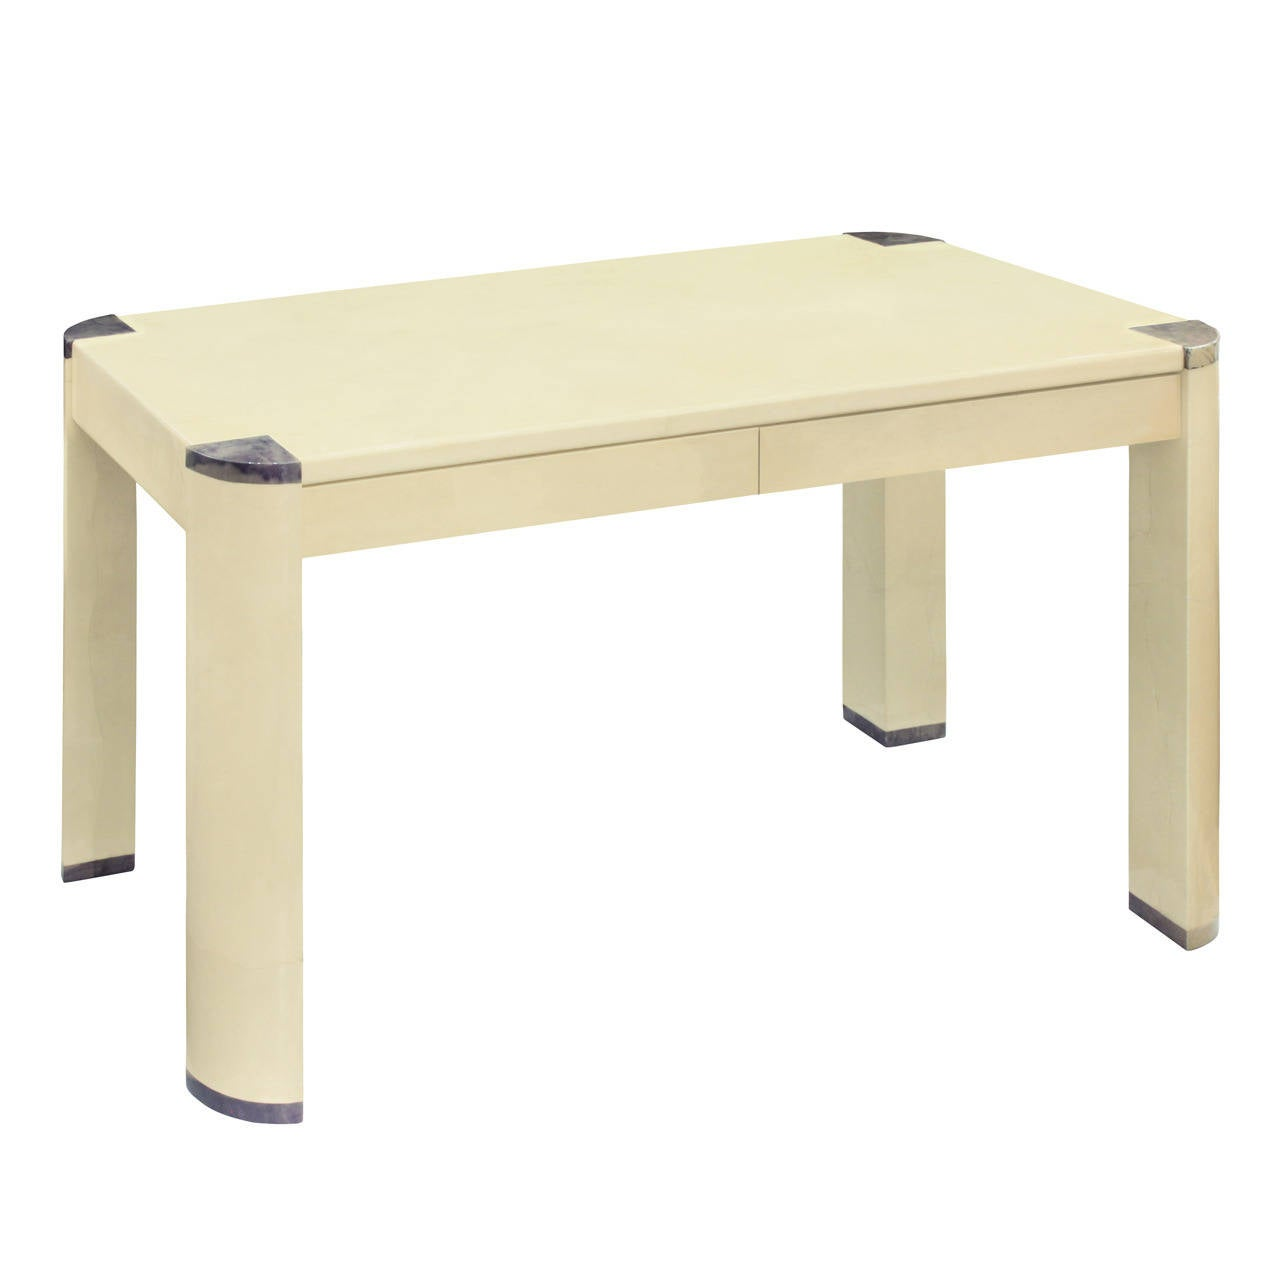 """Radius Leg Writing Desk"" in Lacquered Goatskin by Karl Springer"